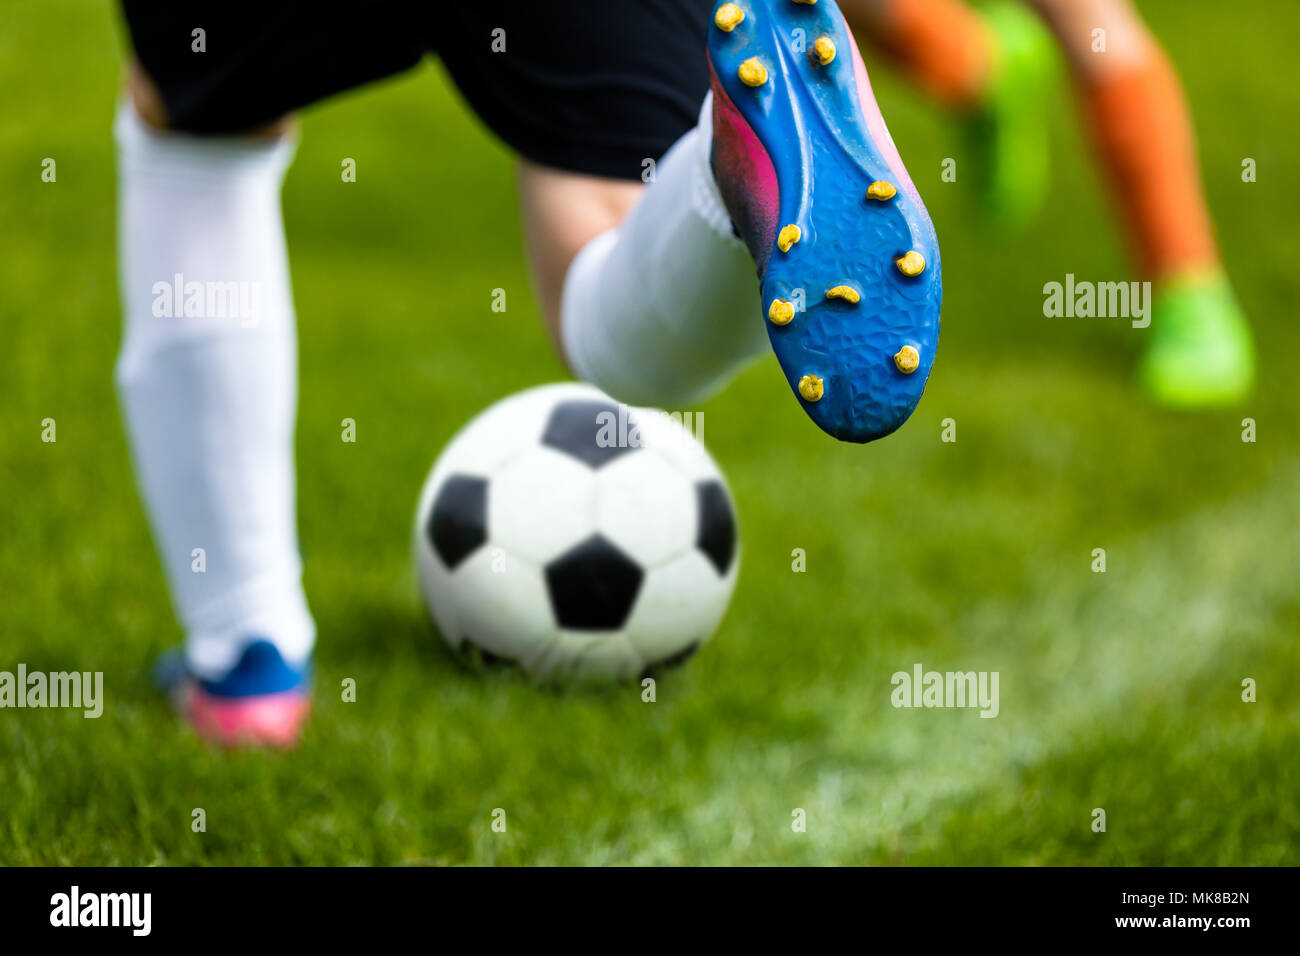 Soccer Kick. Footballer Kicking Ball on Grass Pitch. Football Soccer Player Hits a Ball. Soccer Boots Close Up - Stock Image